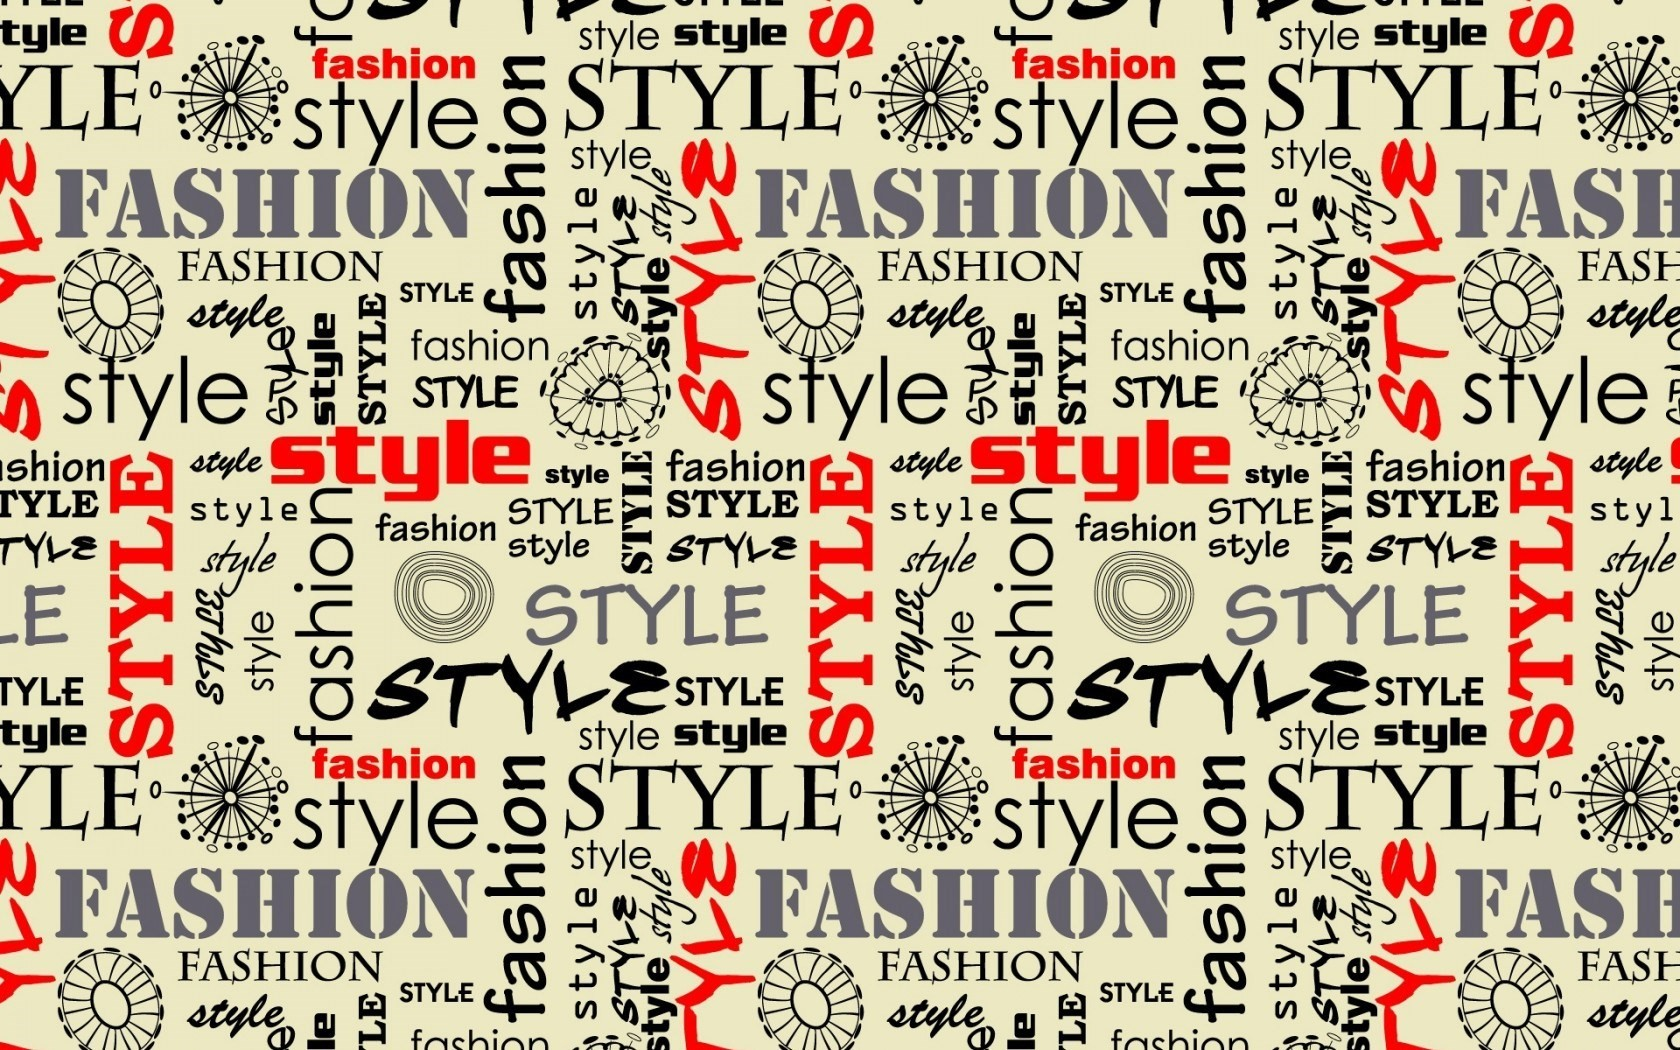 Fashion Wallpaper Hd Pixelstalk Images About Fashion Wallpapers On Pinterest Mandala 1680x1050